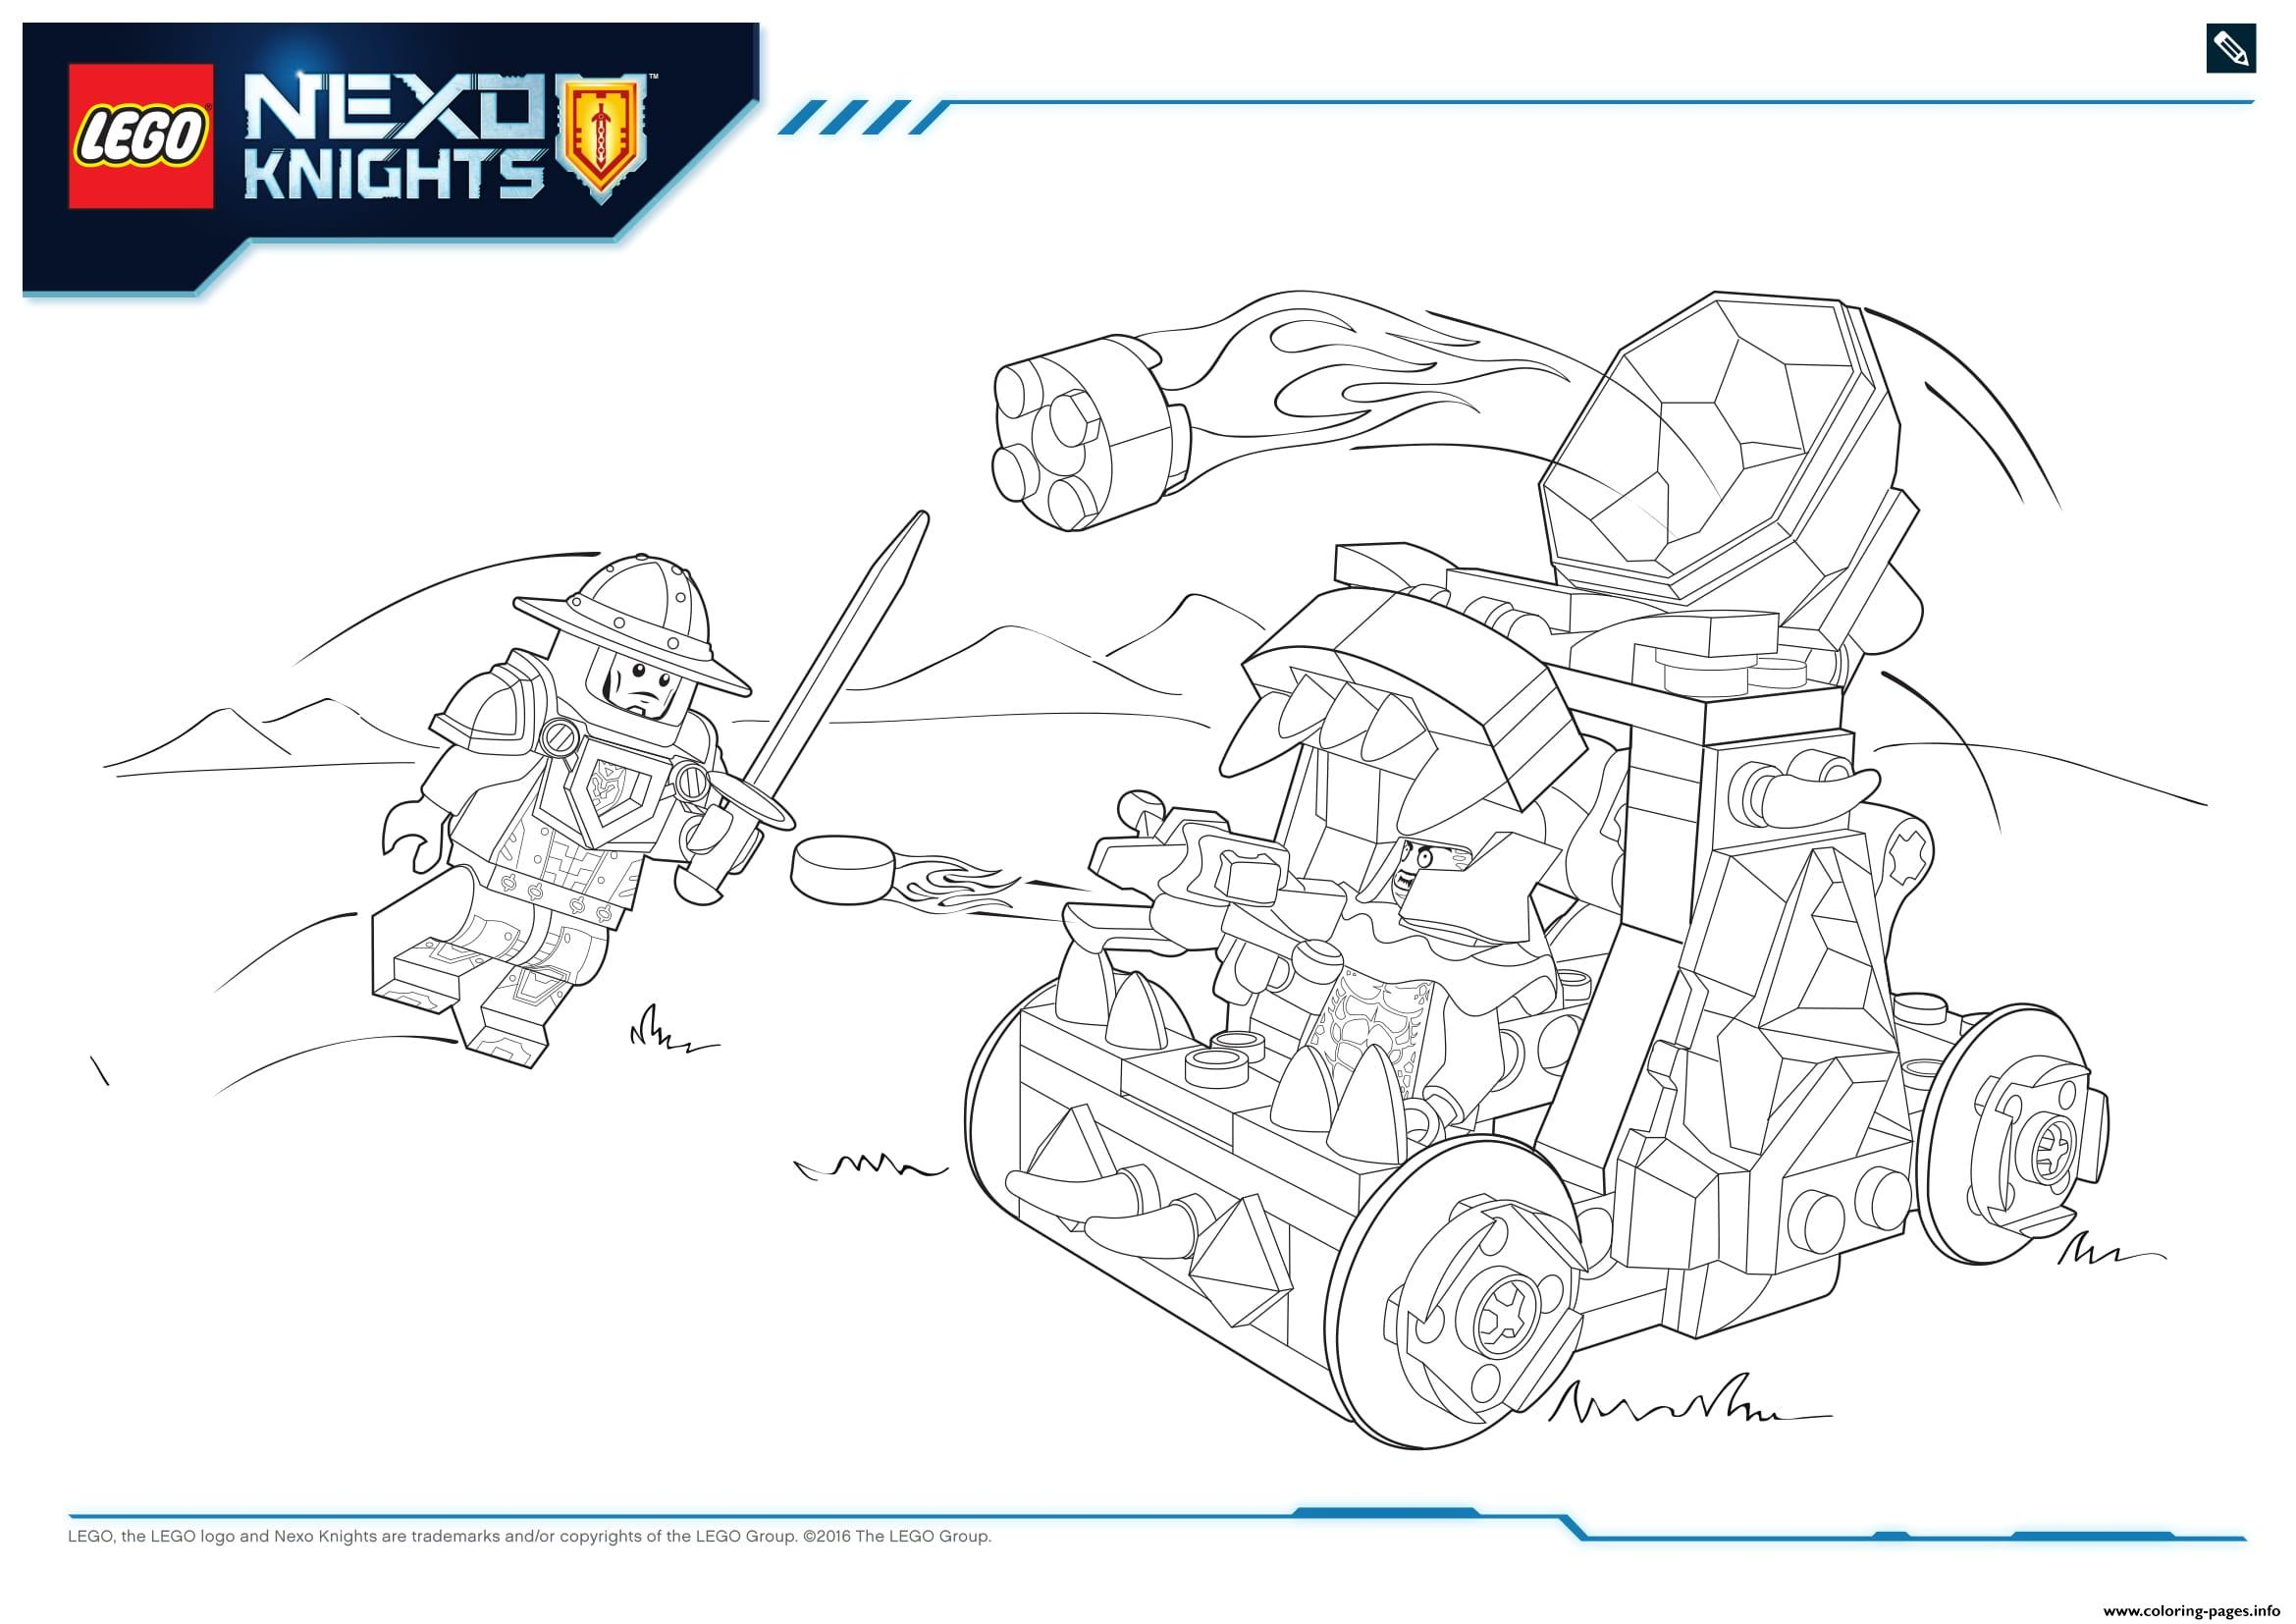 lego nexo knights le repaire volcanique de jestro 2 coloring pages - Knight Coloring Pages 2